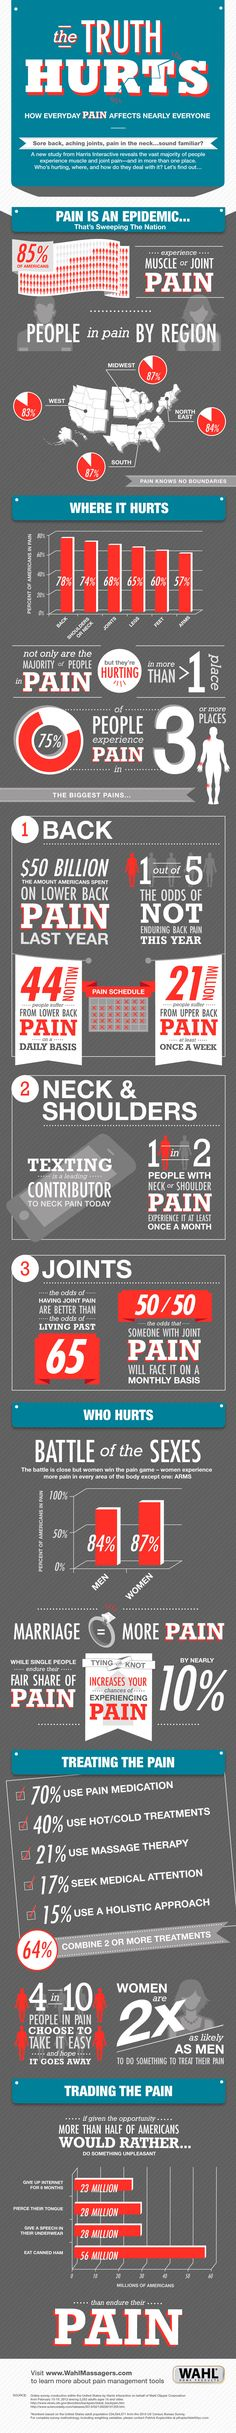 Chronic pain in America.